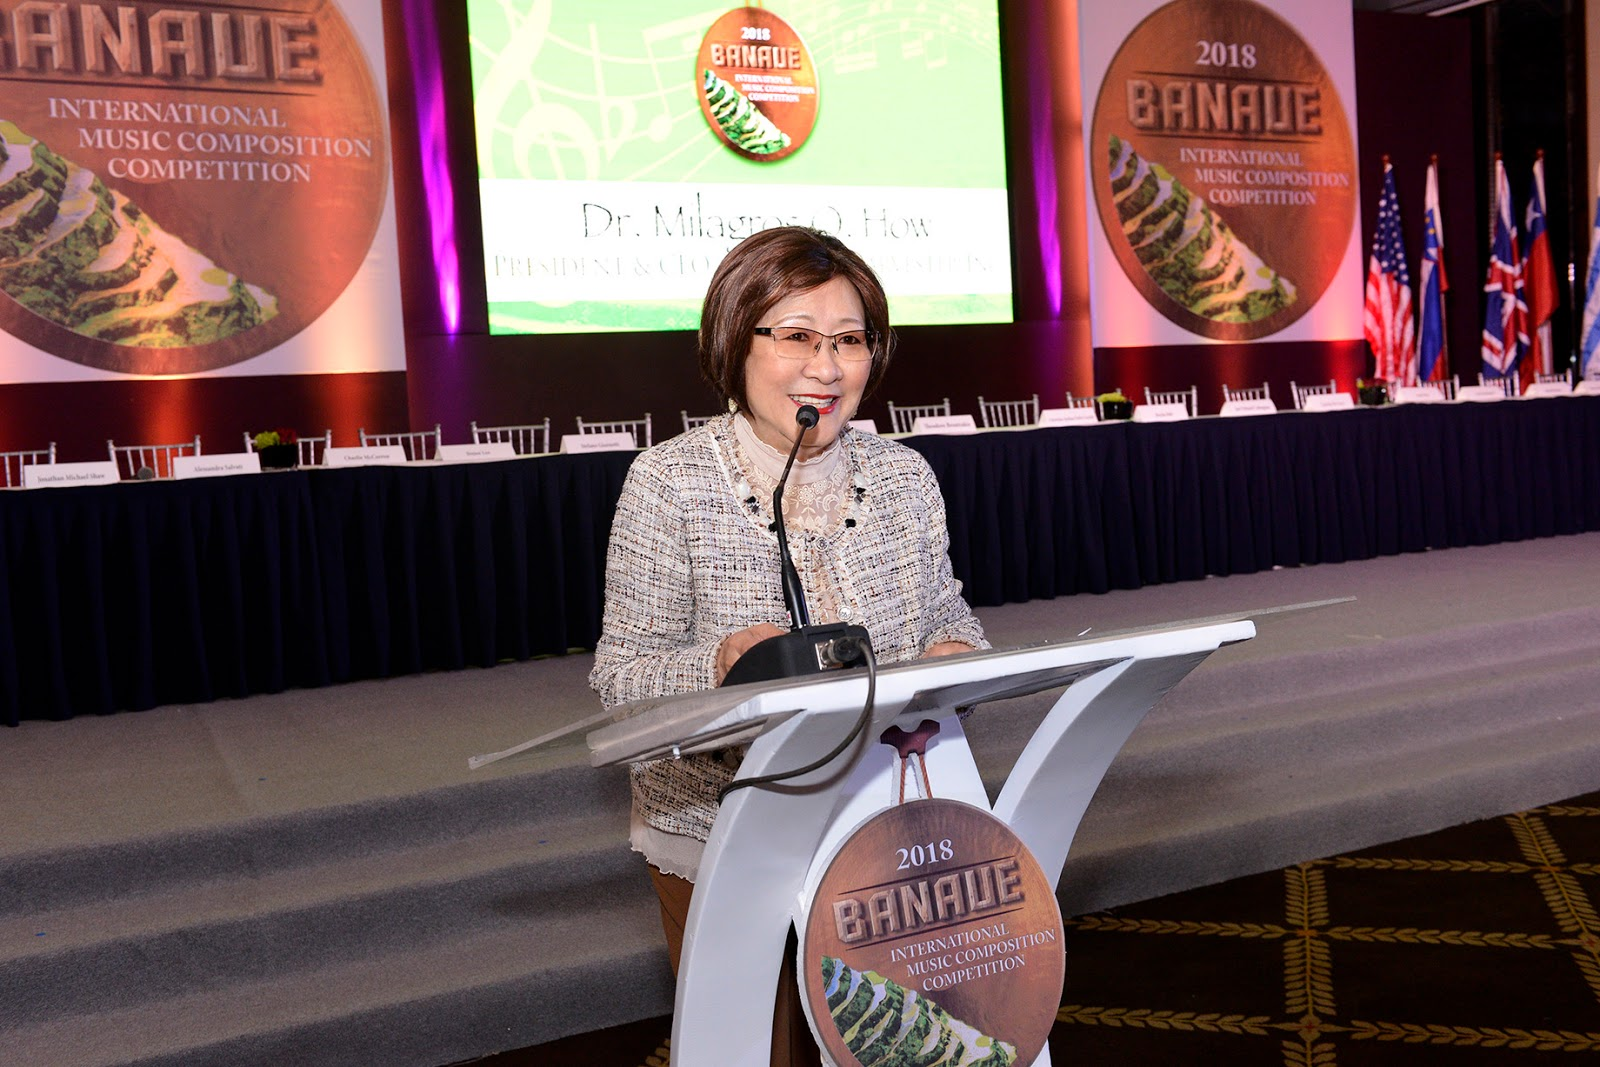 Banaue International Music Composition Competition Chairman and Universal Harvester, Inc. President/CEO Dr. Milagros O. How